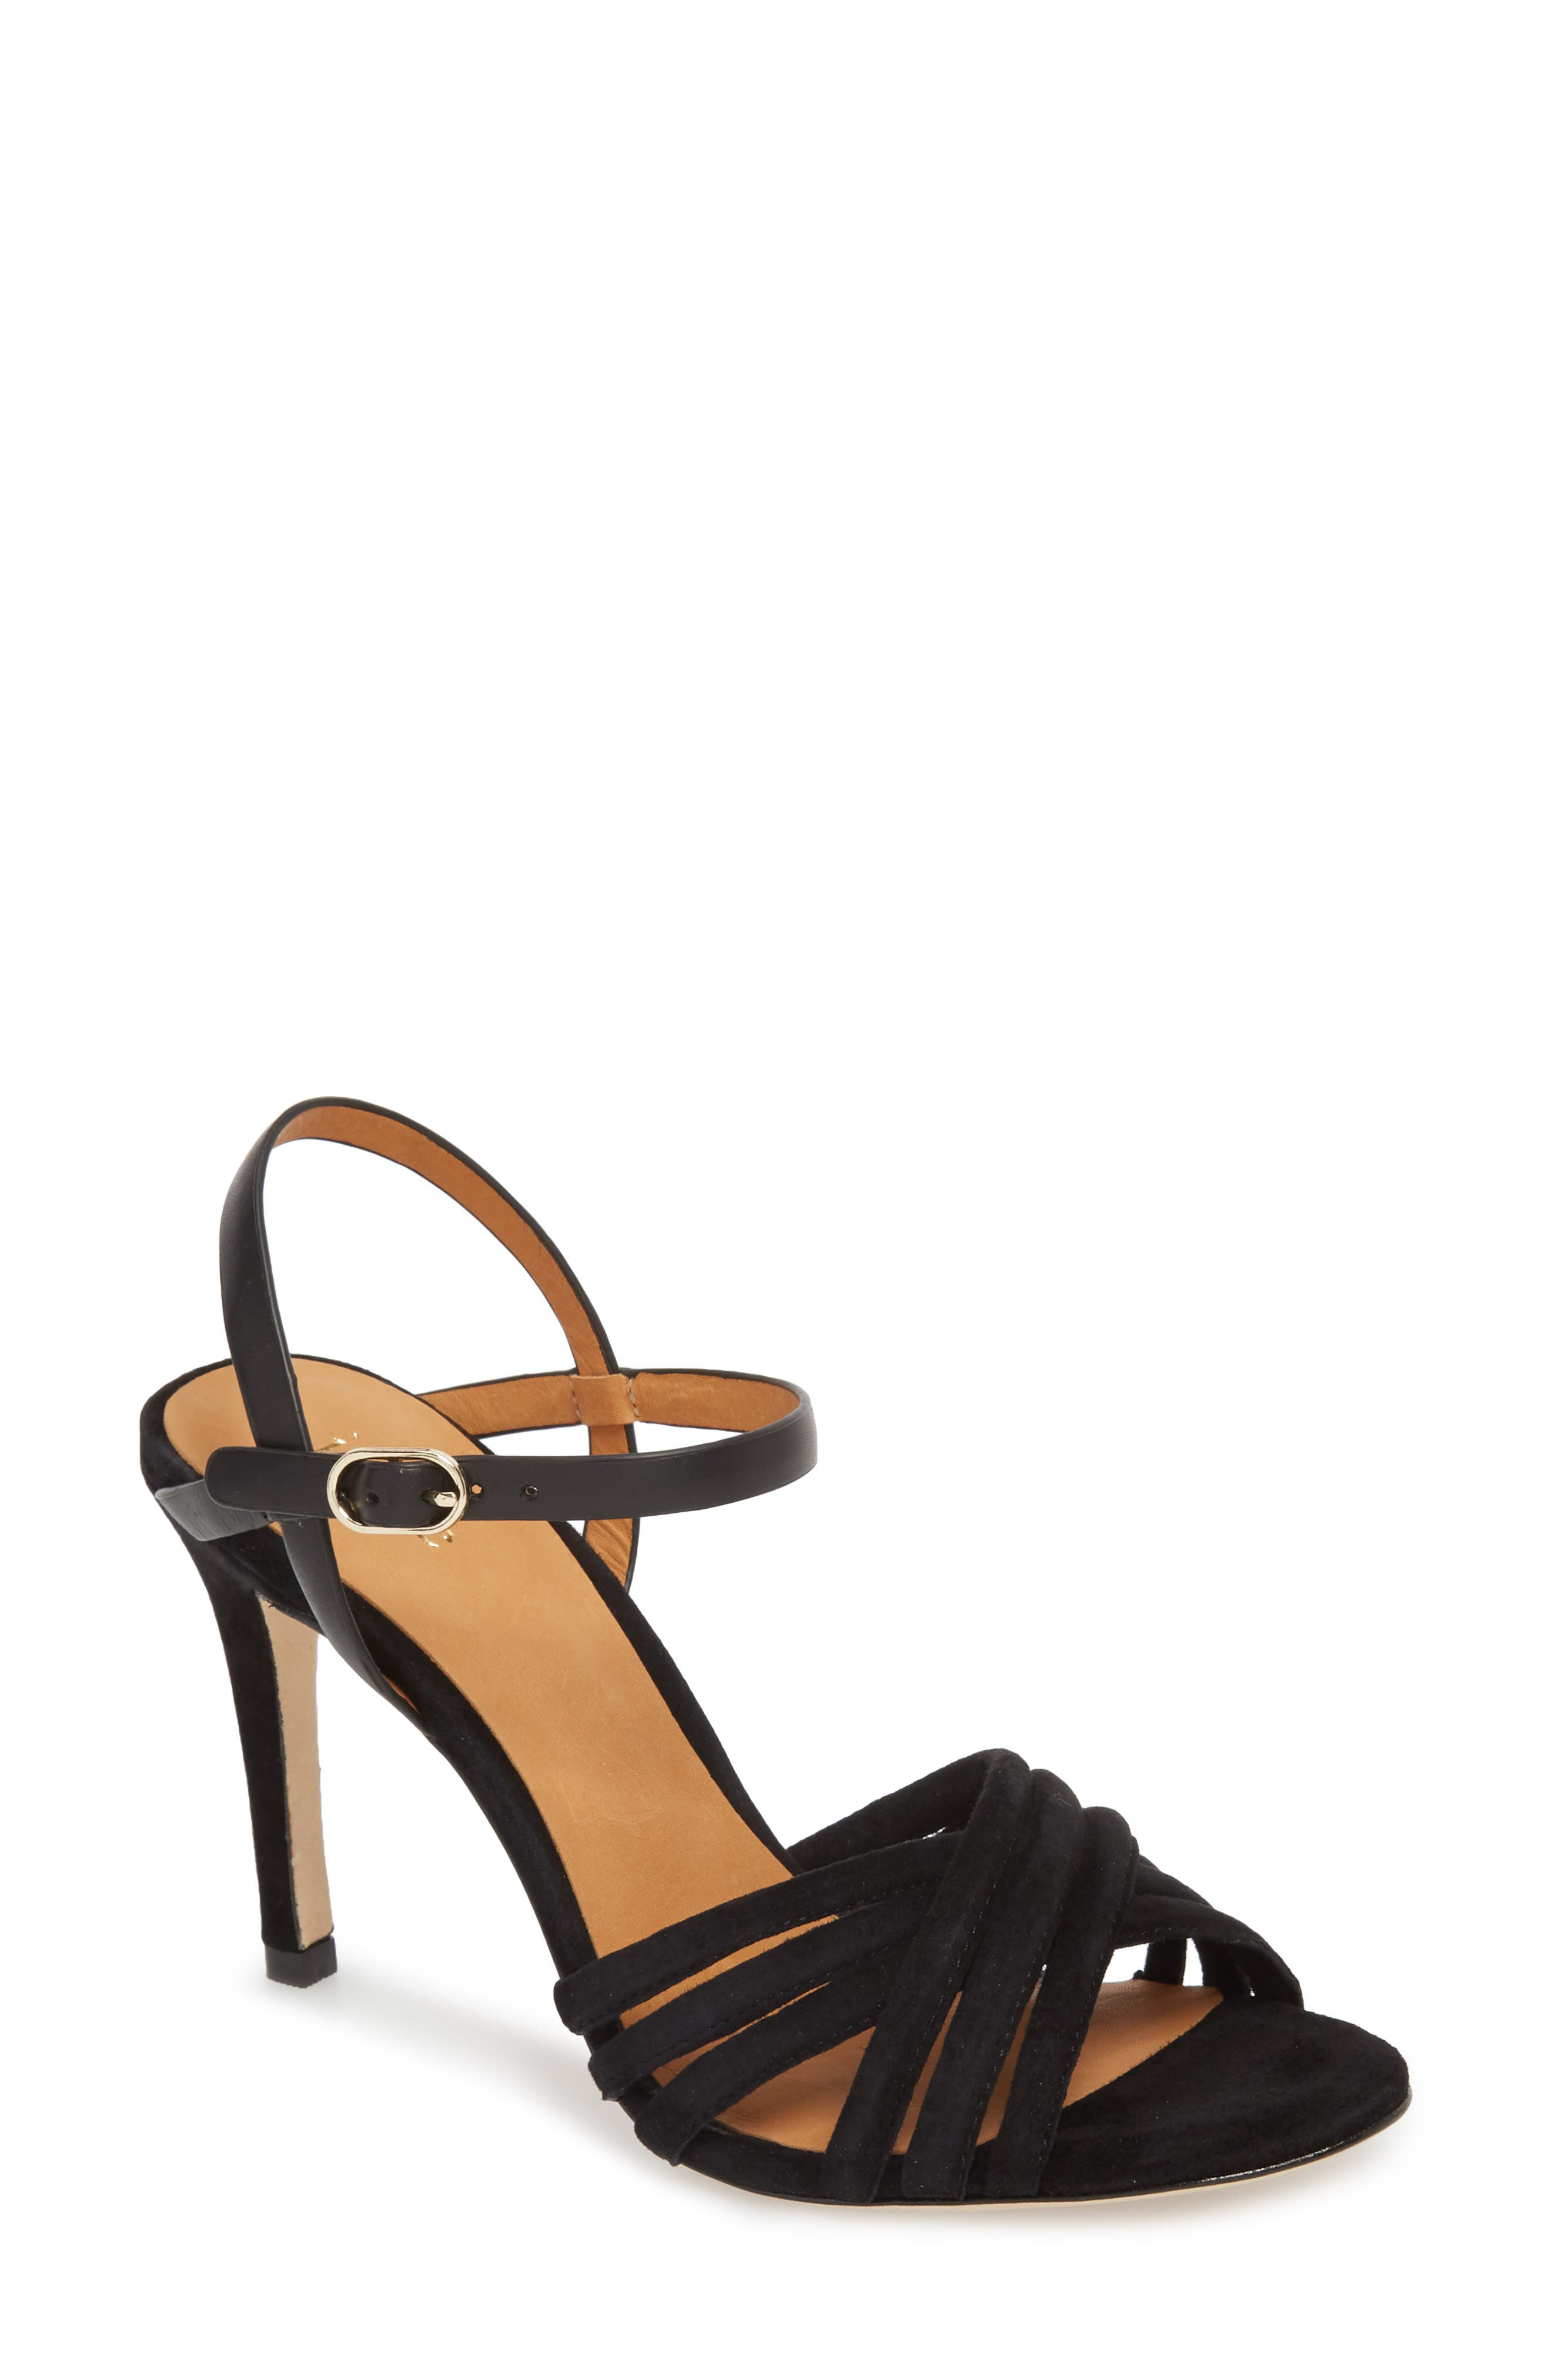 Amerton Sandal,                         Main,                         color, 001